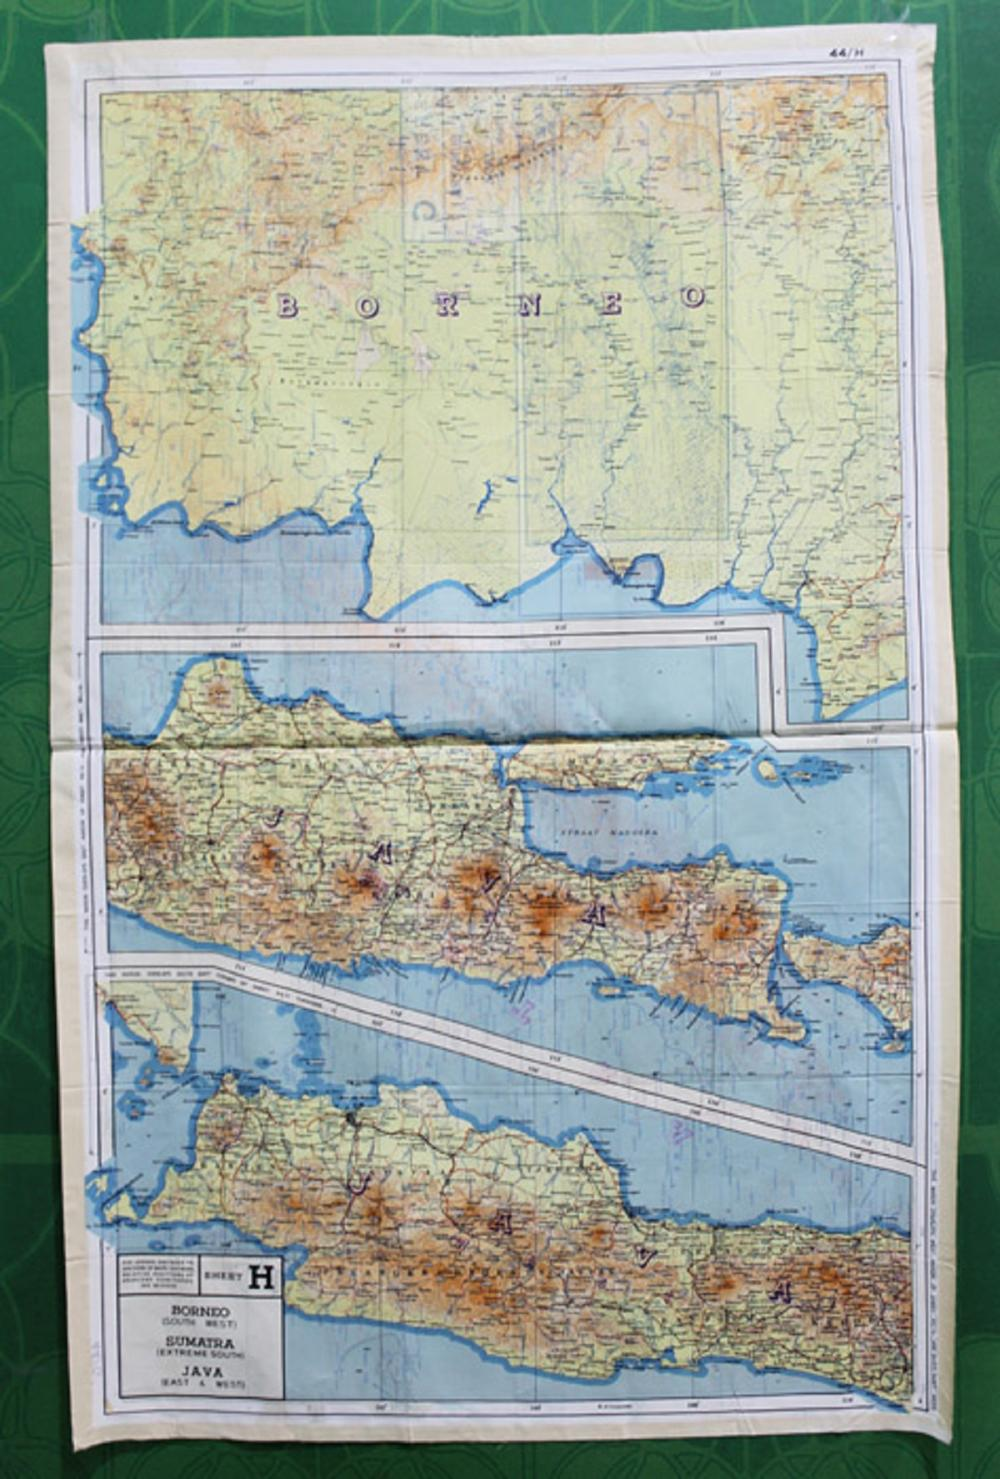 WWII U.S. A(rmy) A(ir) F(orce) Cloth Map of the Borneo, Sumatra & Java